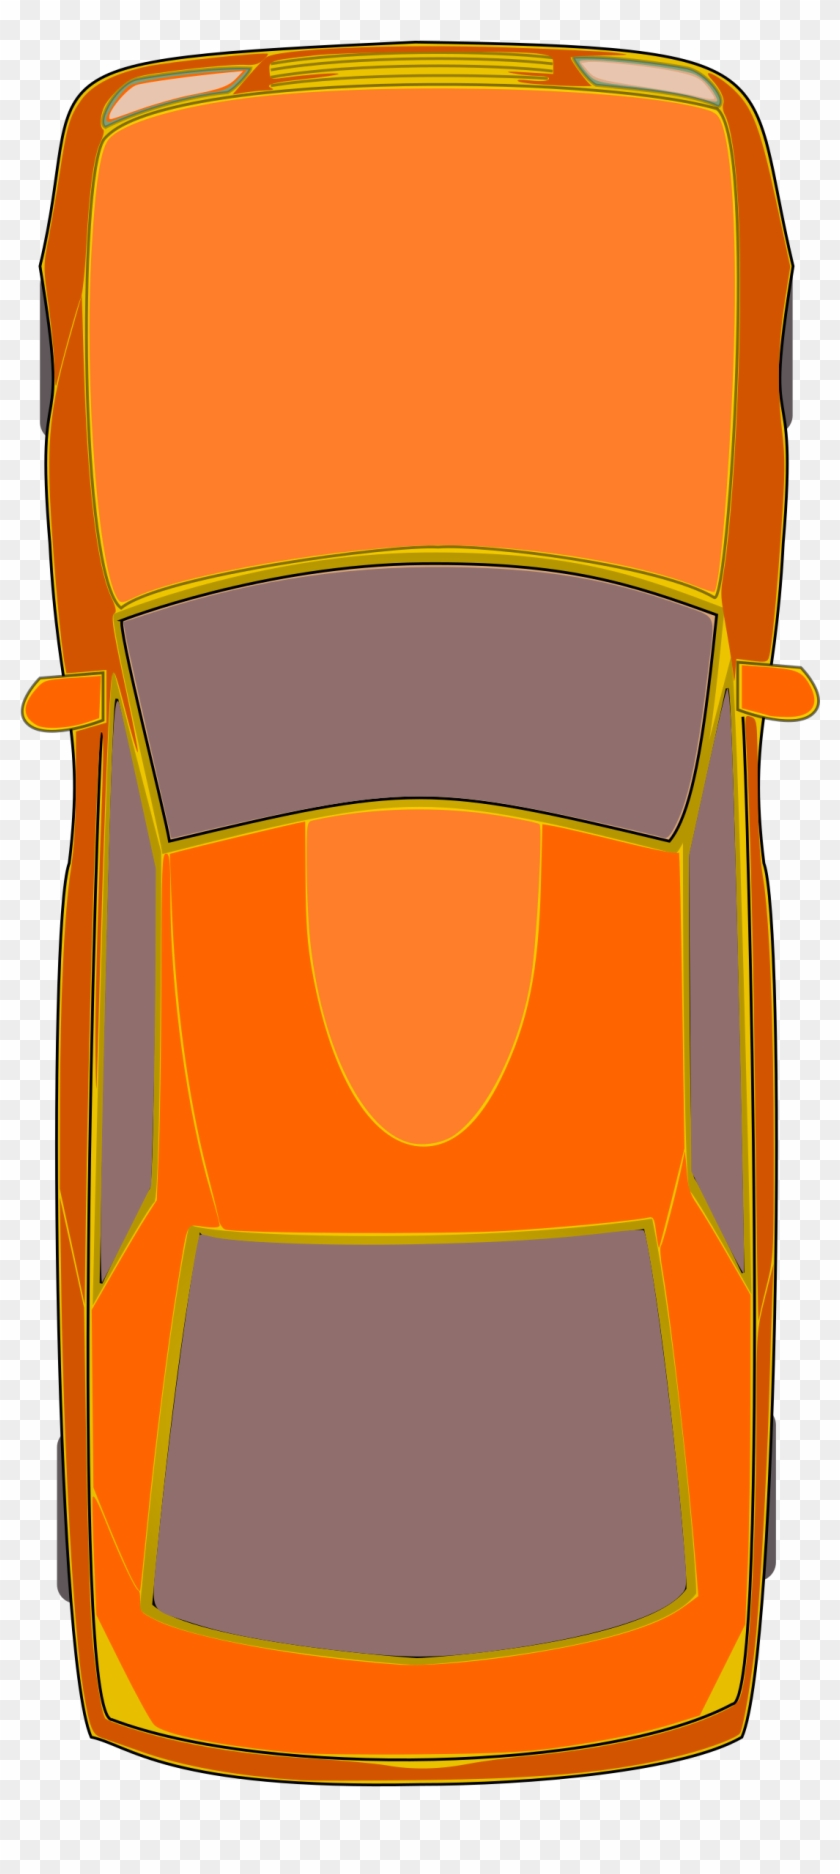 hight resolution of furniture clipart top view car clipart top view hd png download